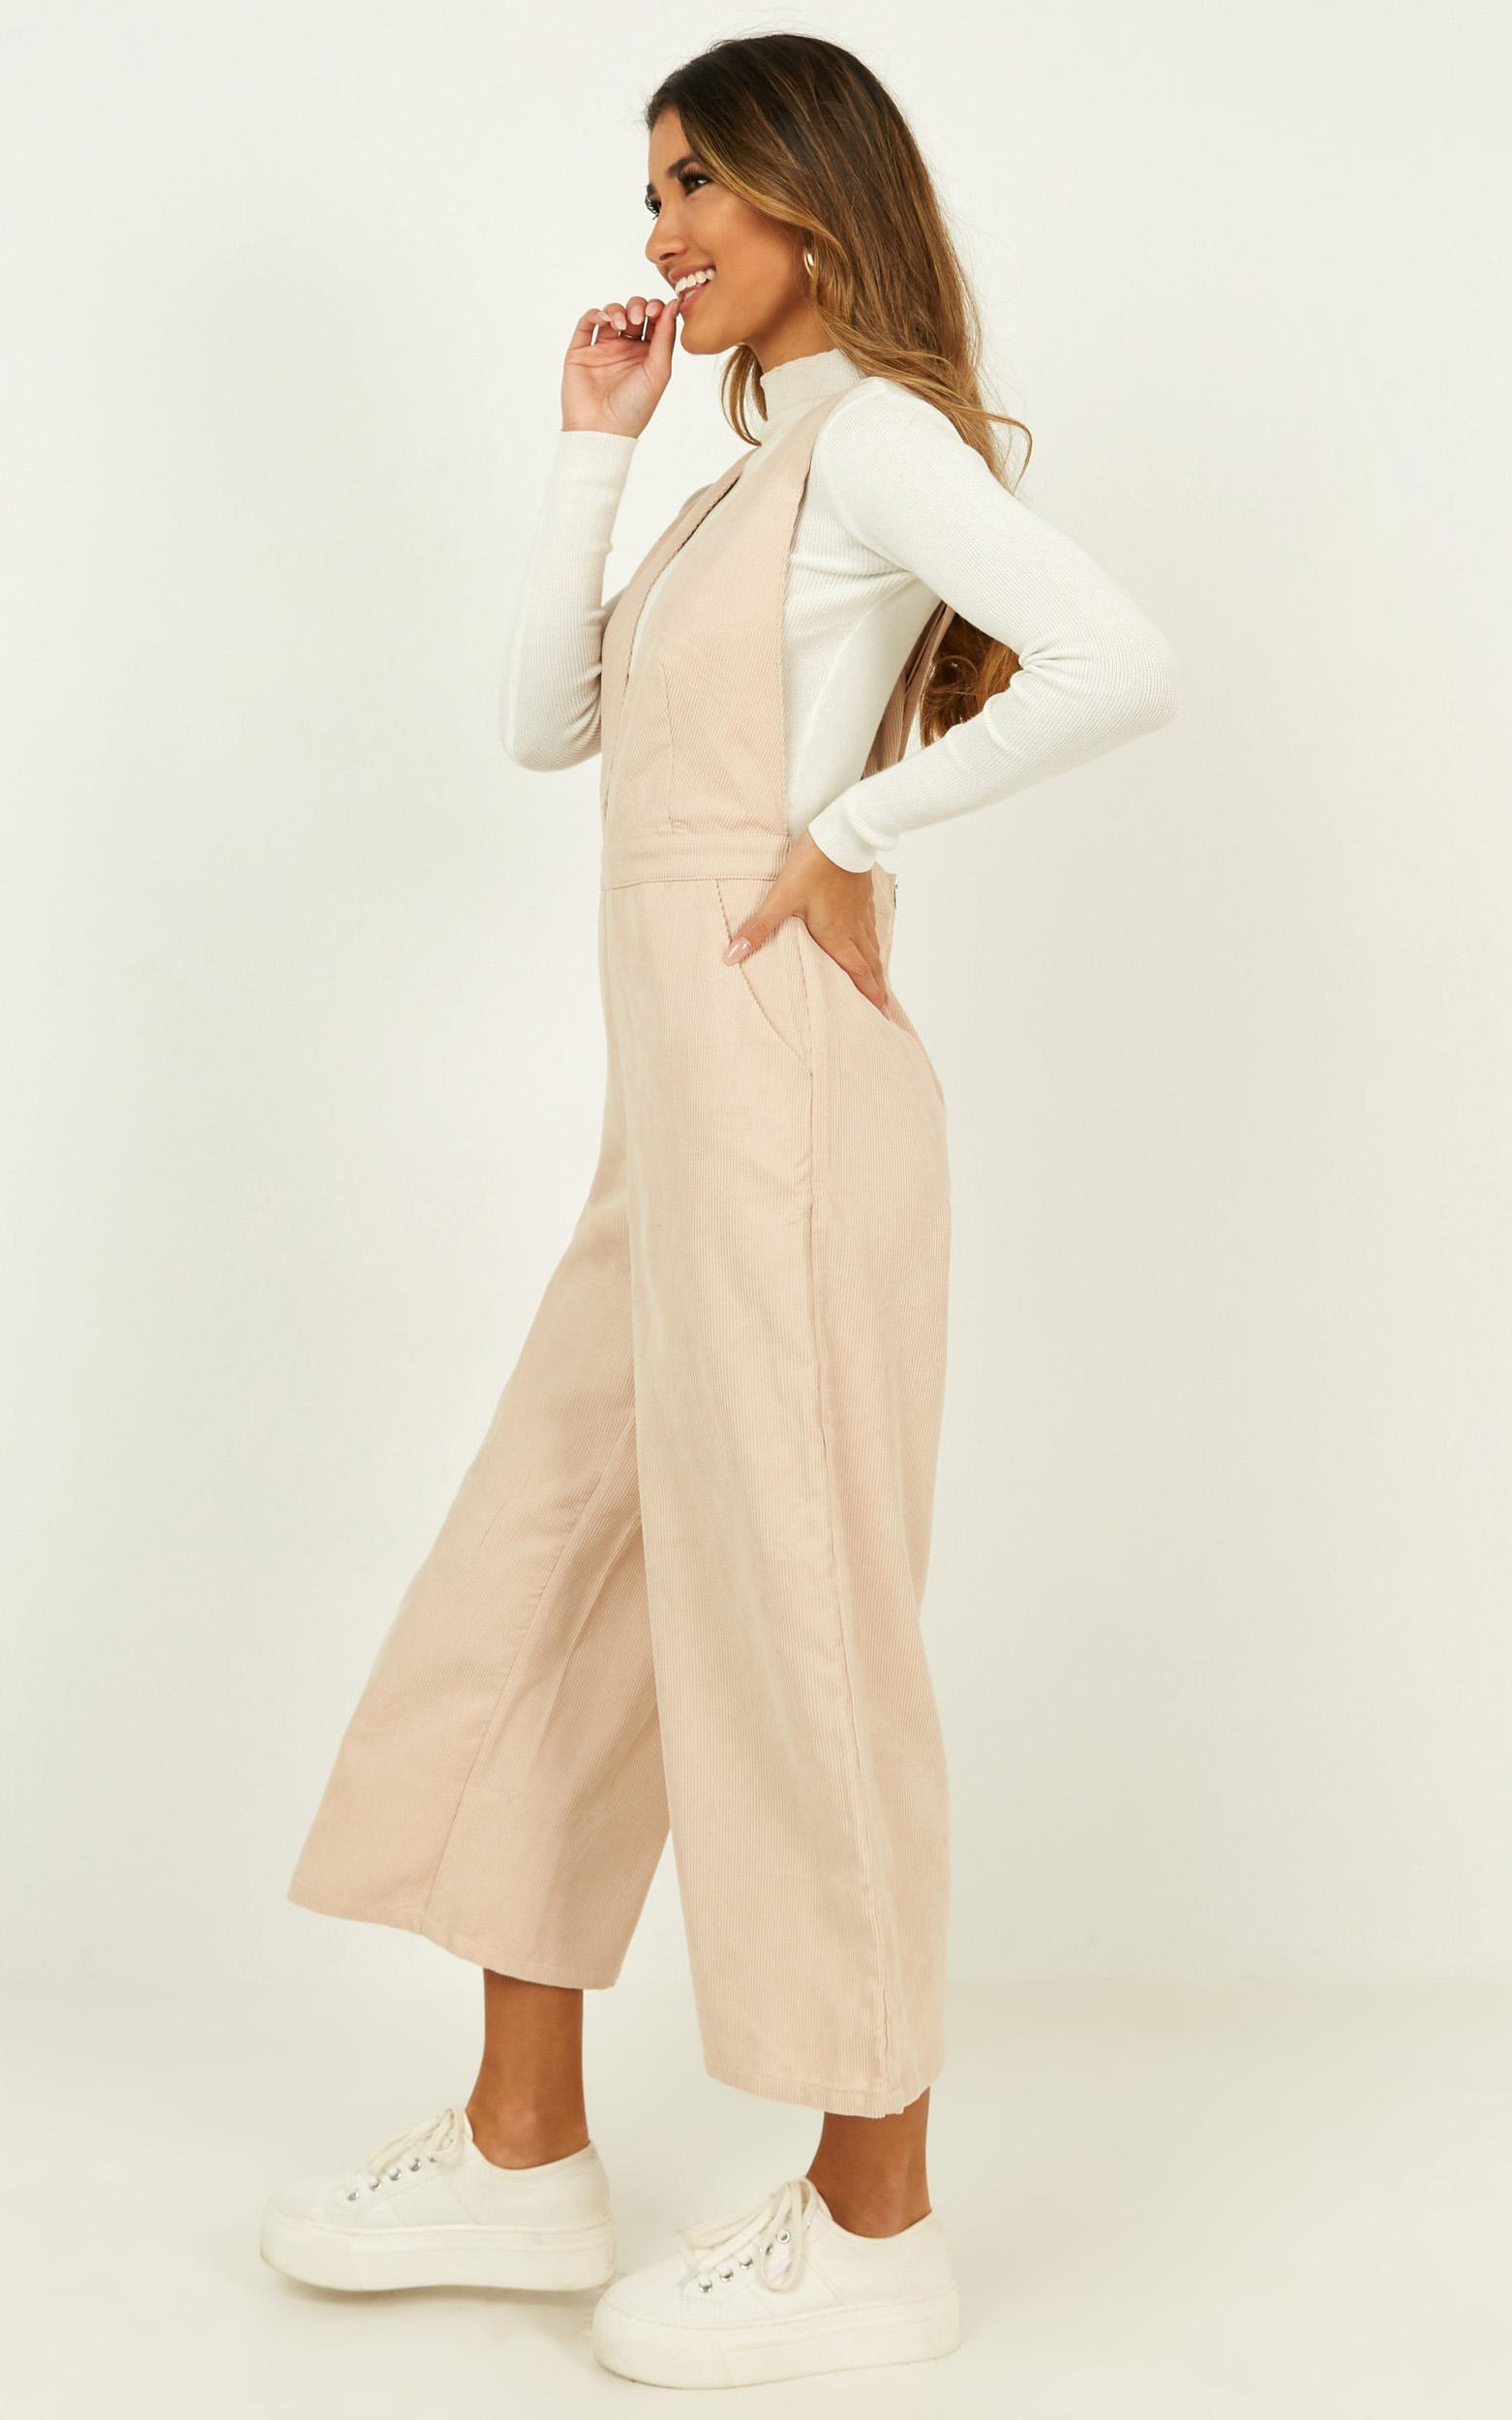 Cult Following Jumpsuit in cream - 18 (XXXL), Cream, hi-res image number null